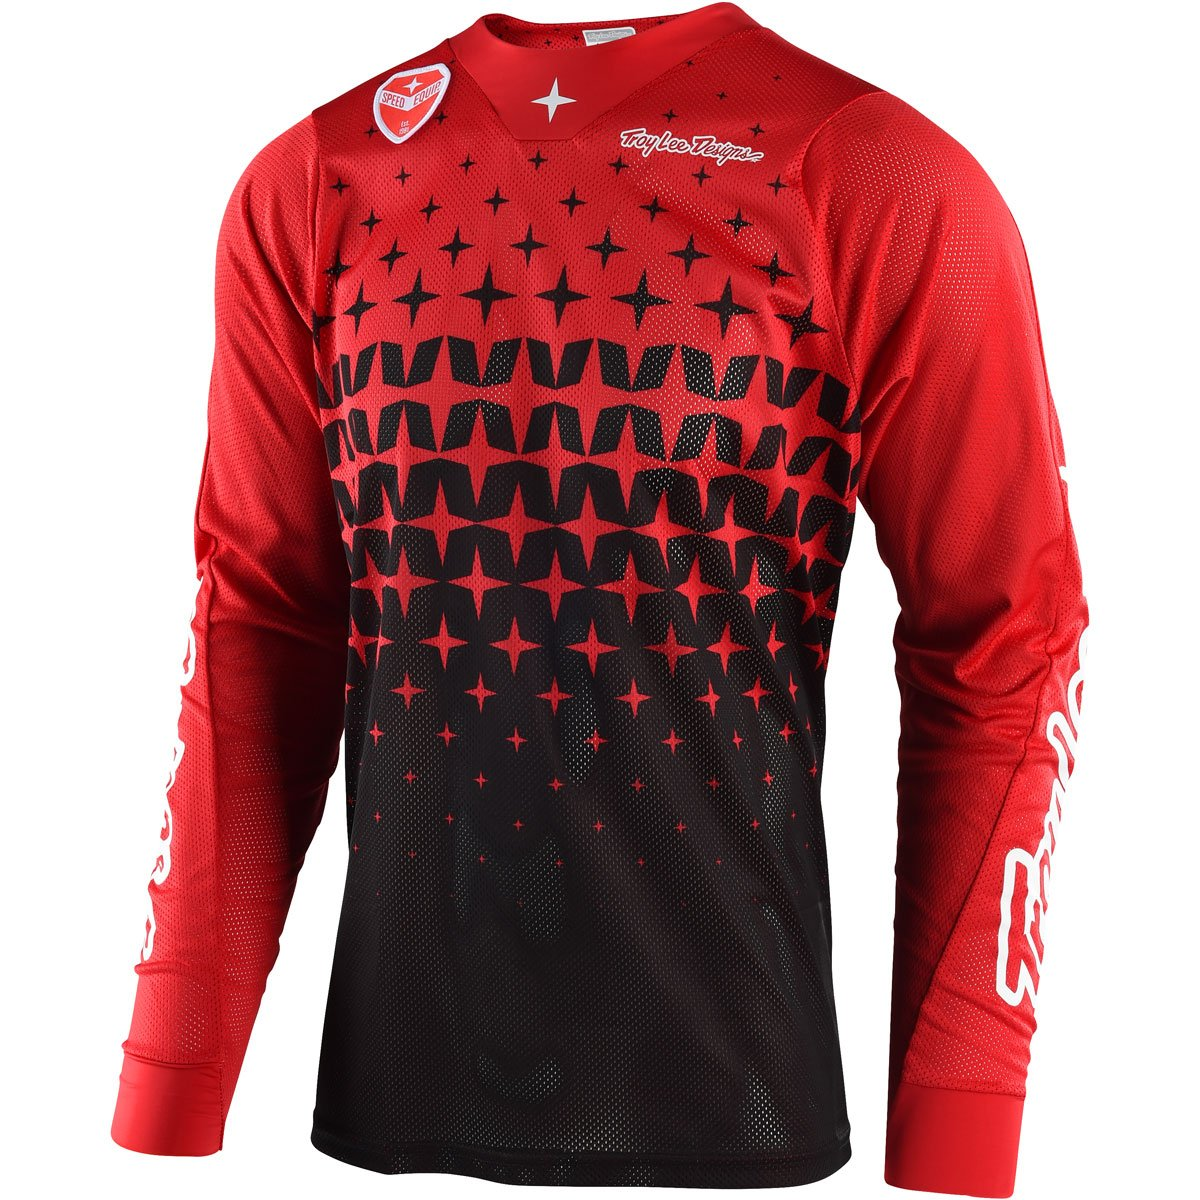 Troy Lee Designs SE Air Megaburst Men's Off-Road Motorcycle Jersey - Red/Black / Large by Troy Lee Designs (Image #1)